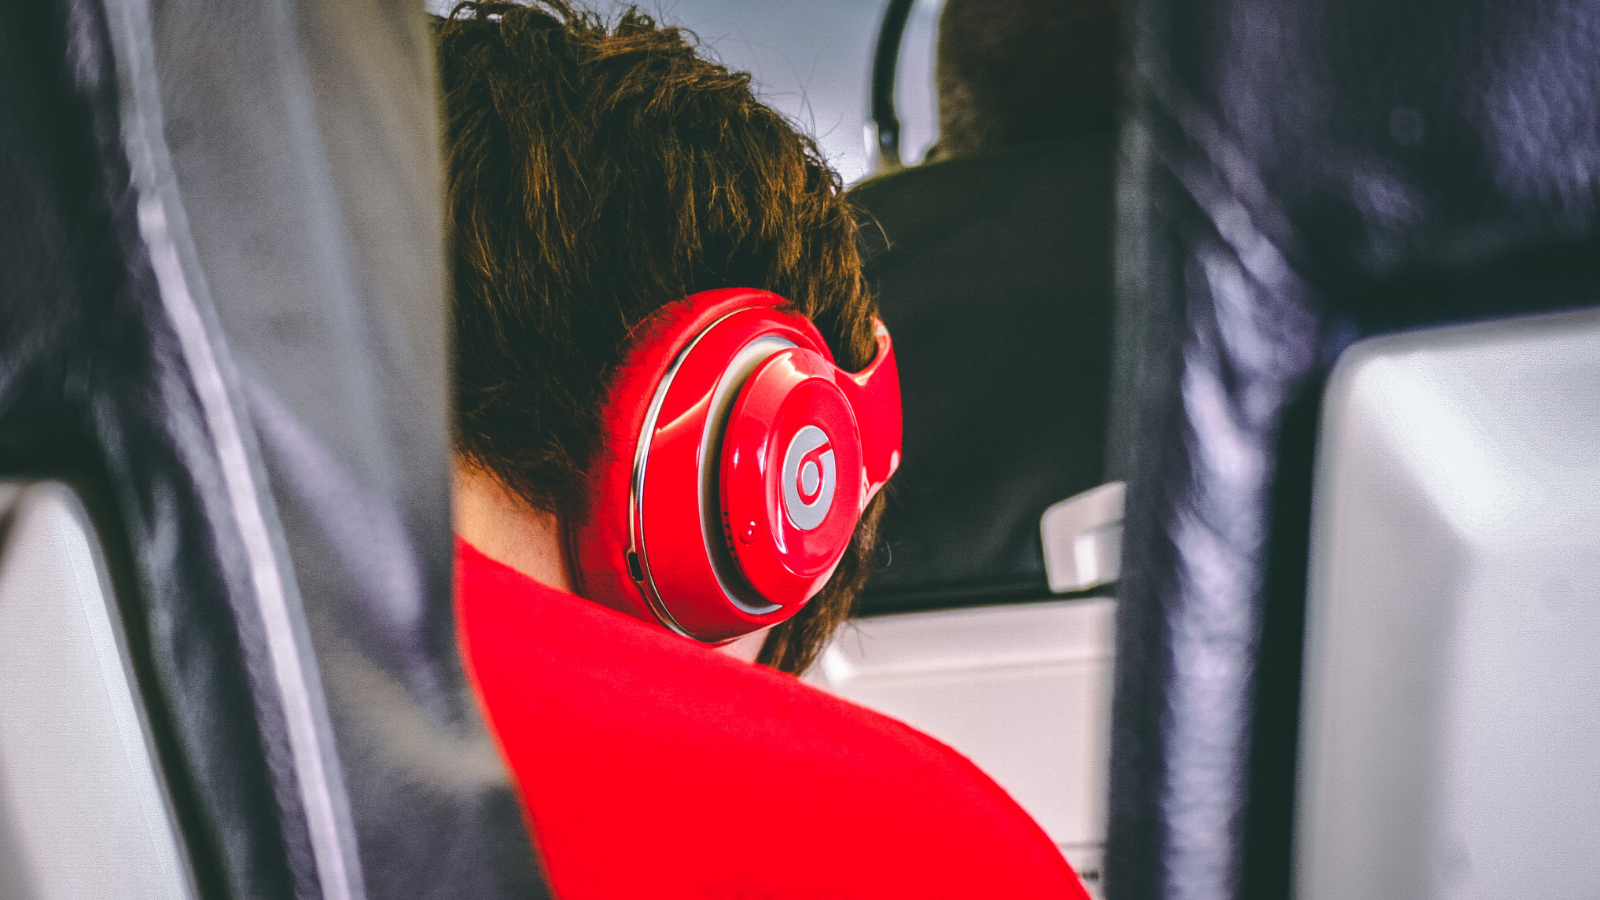 Block out the outside world with state-of-the-art noise-cancelling technology from InMotion